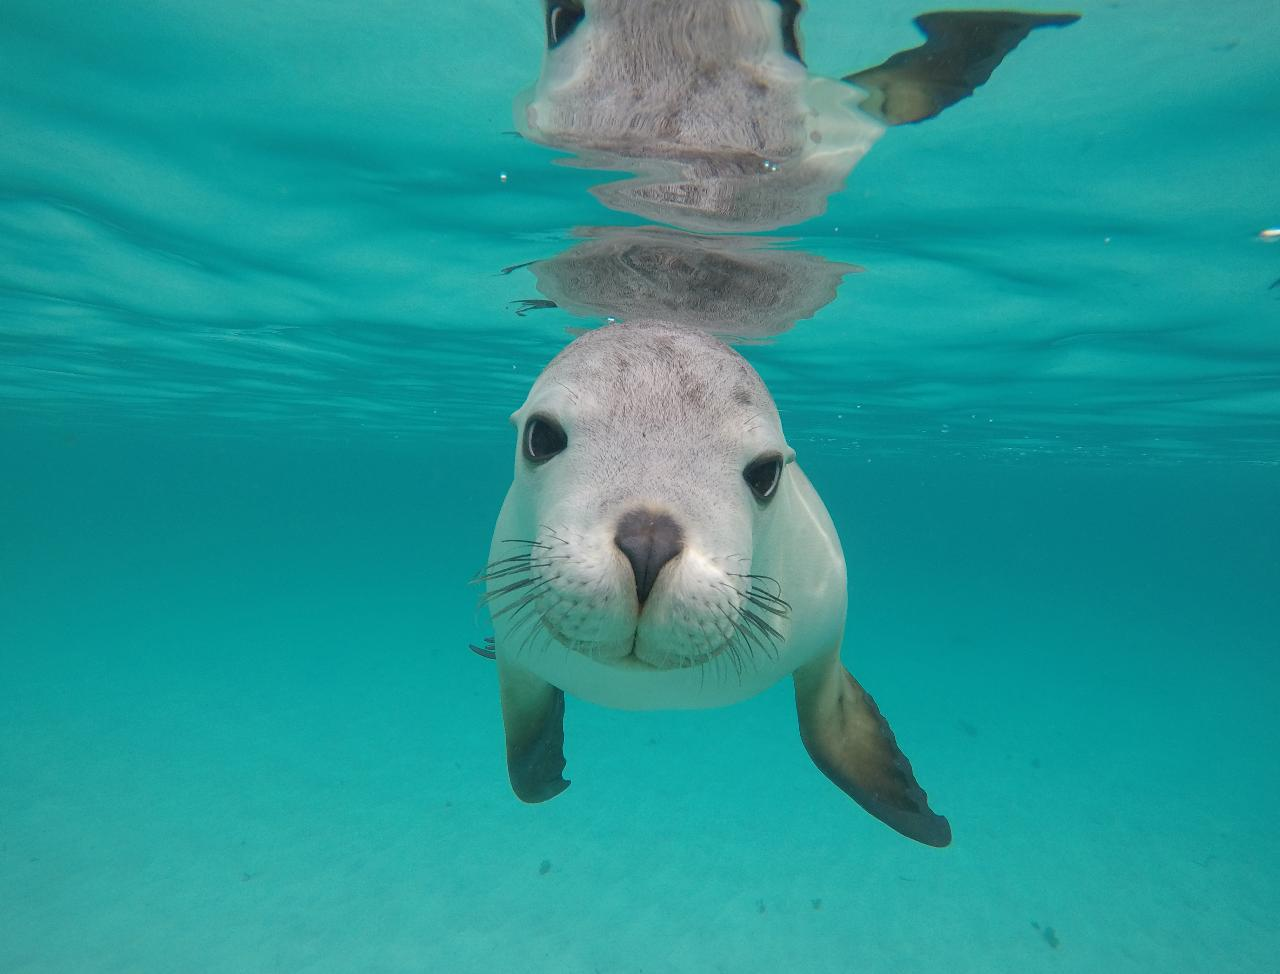 Swim with the Sealions - Double The Fun